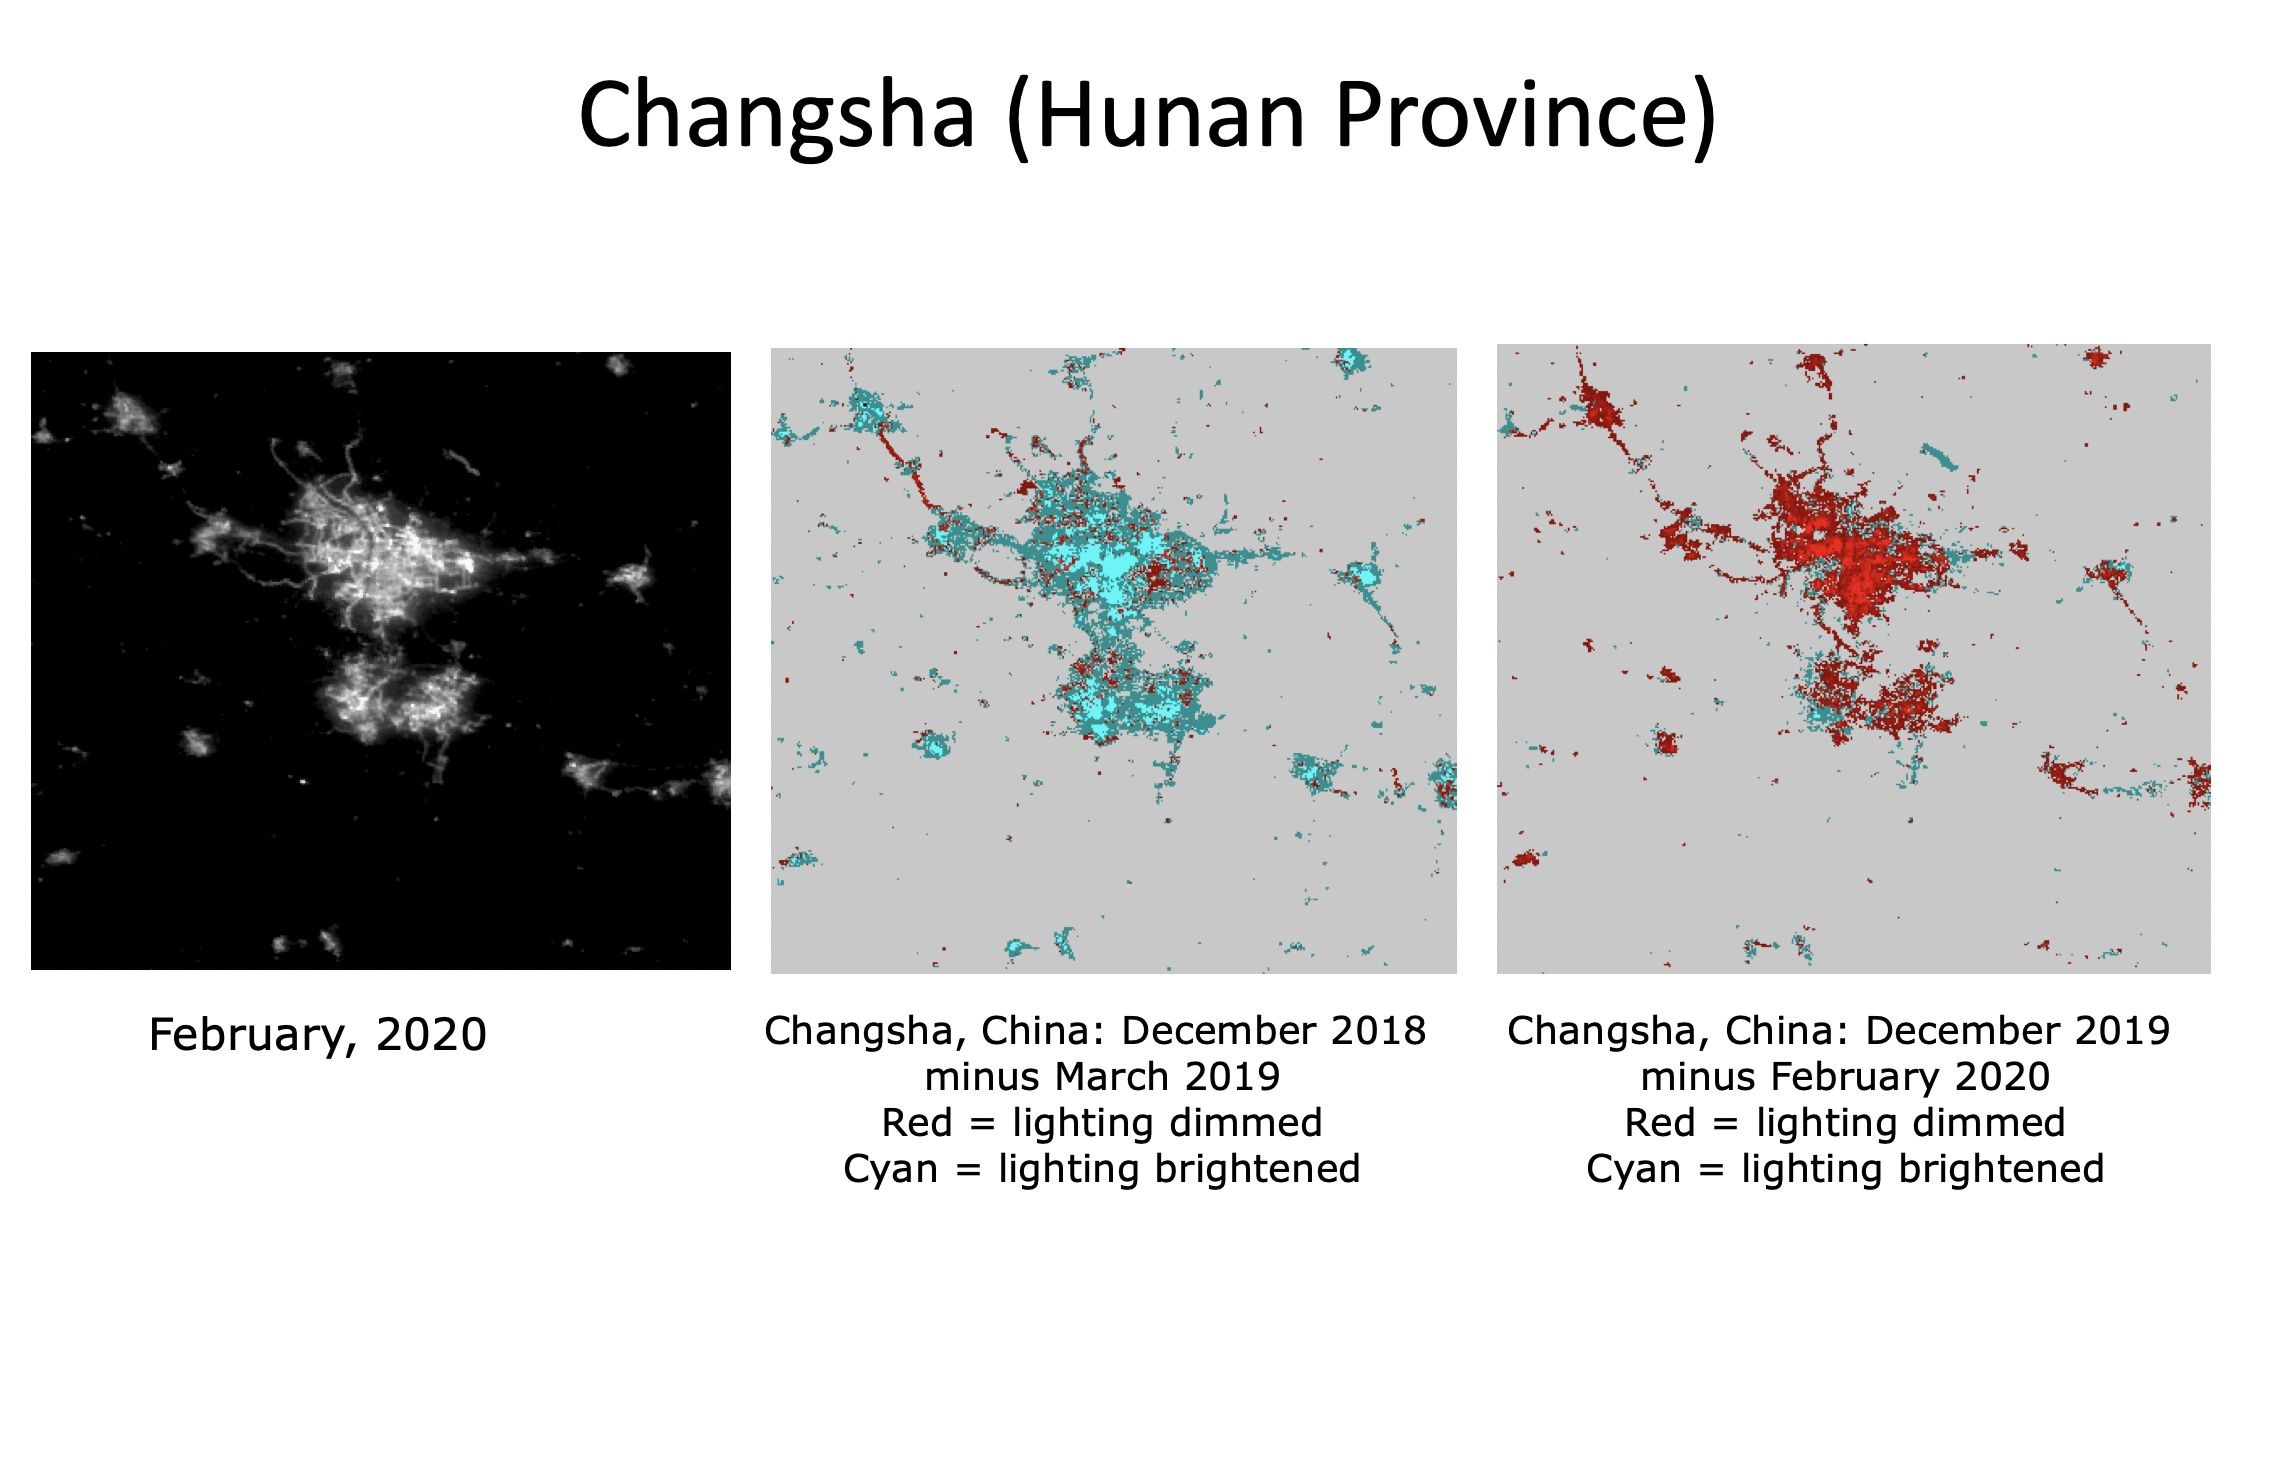 Figure 2. Light levels in Changsha compared with this time last year